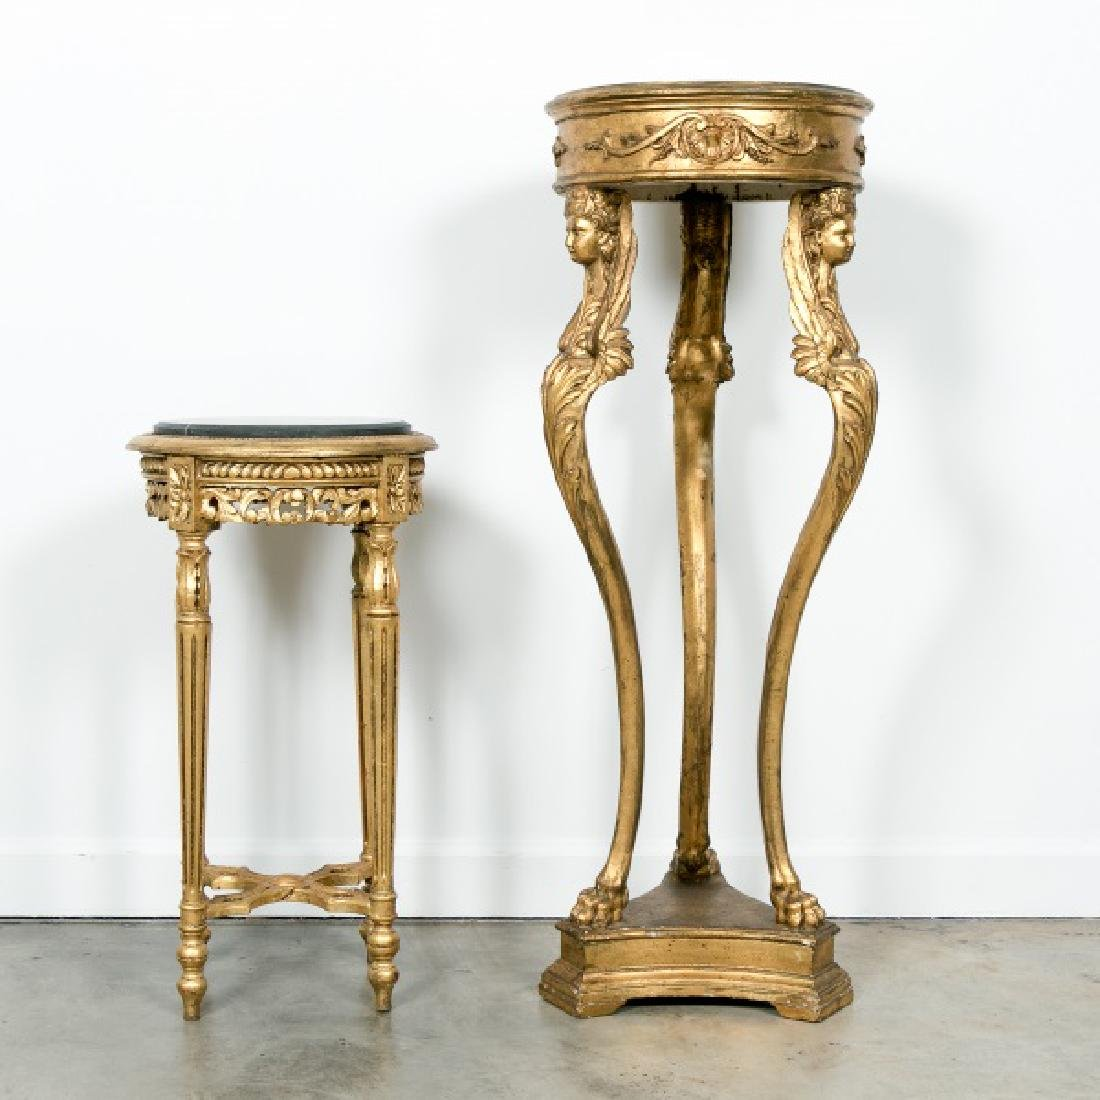 Group of 2 Carved Giltwood Gueridon Tables